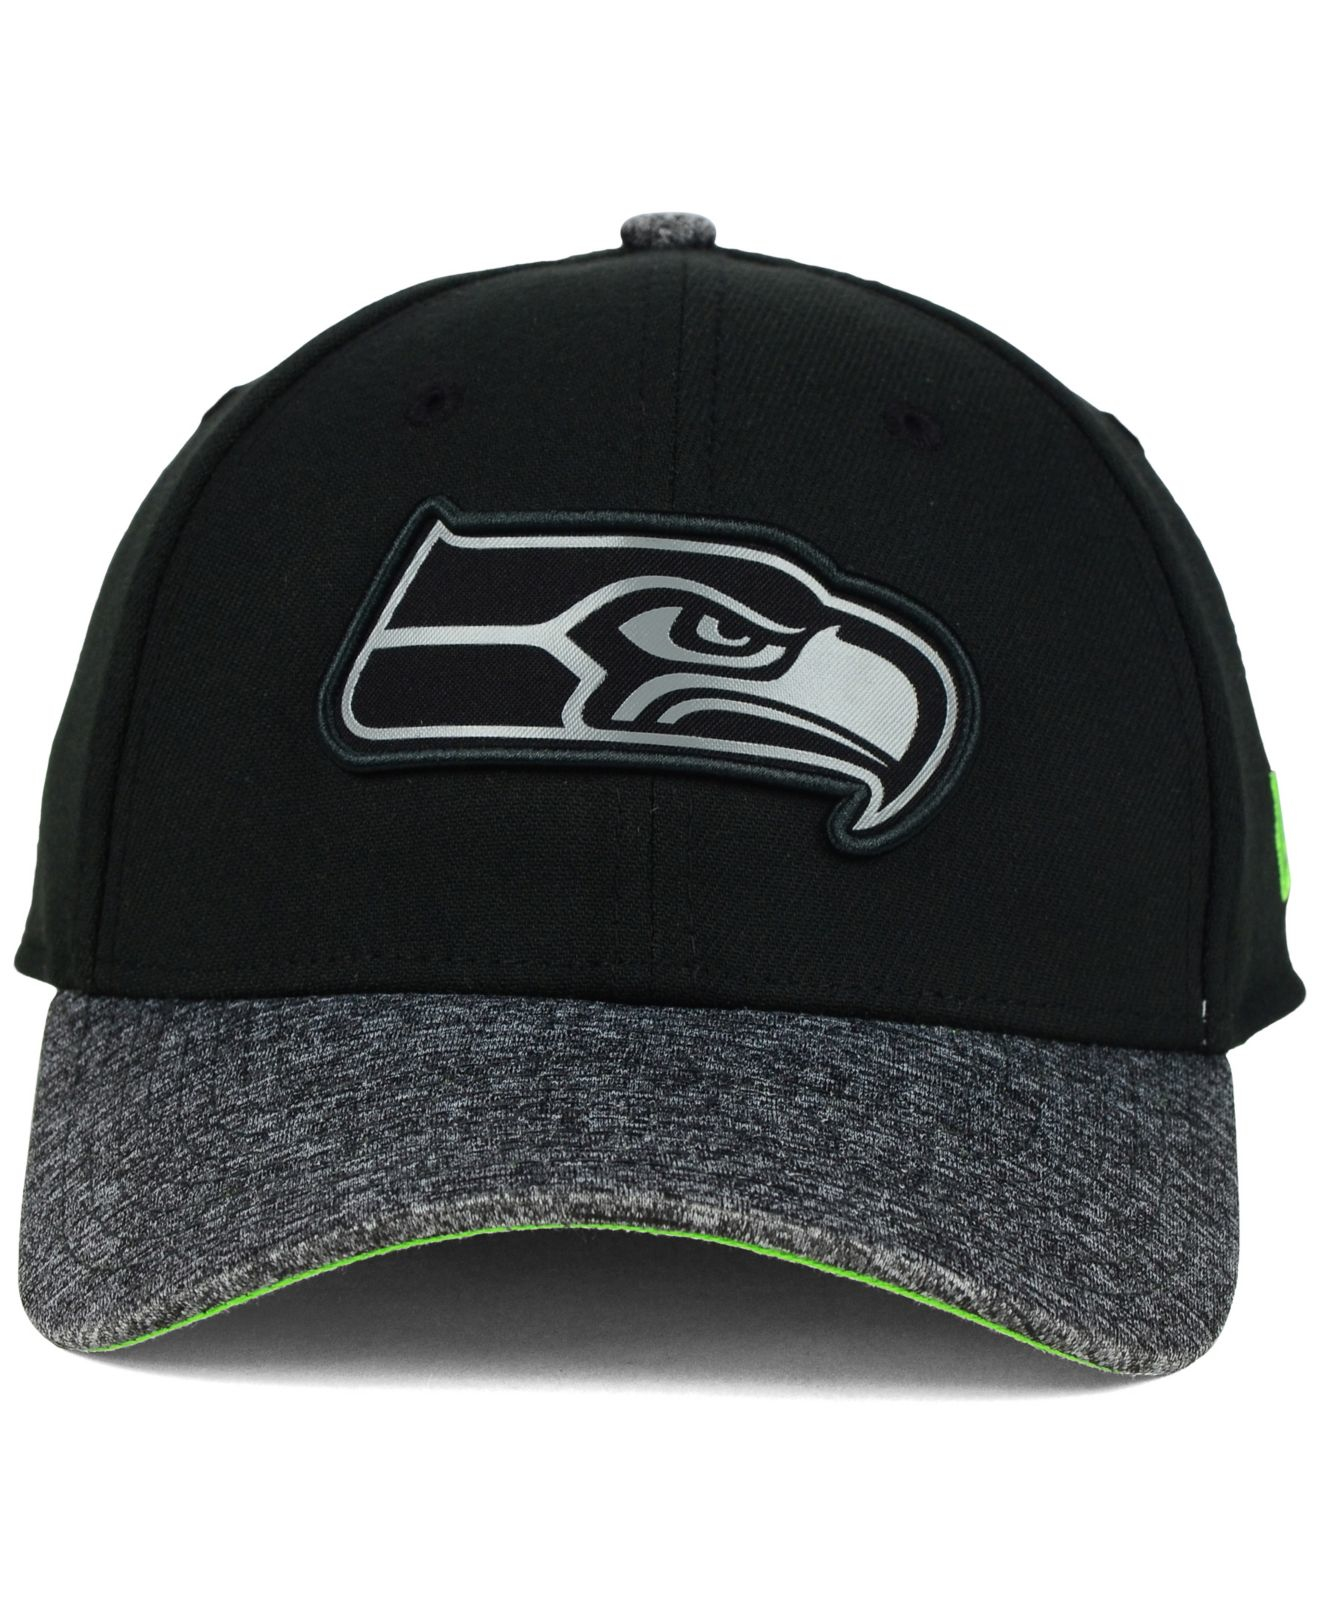 ... 59fifty cap 35824 2e7cc official store lyst ktz seattle seahawks  gridiron 39thirty cap in black for men 69831 375da ... 73b70b219ebb